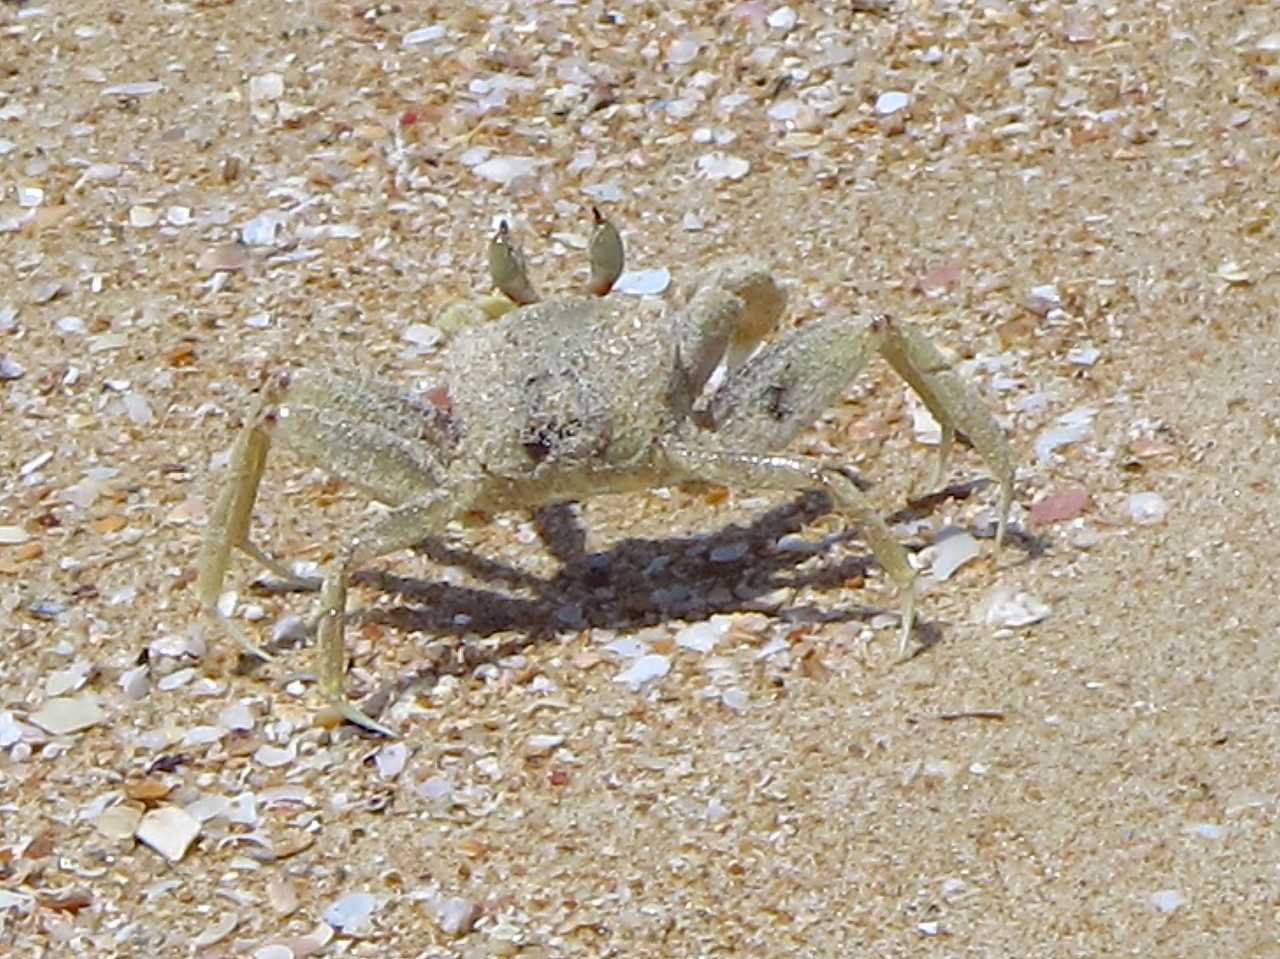 There are also larger crabs that are the size of a small desert plate.